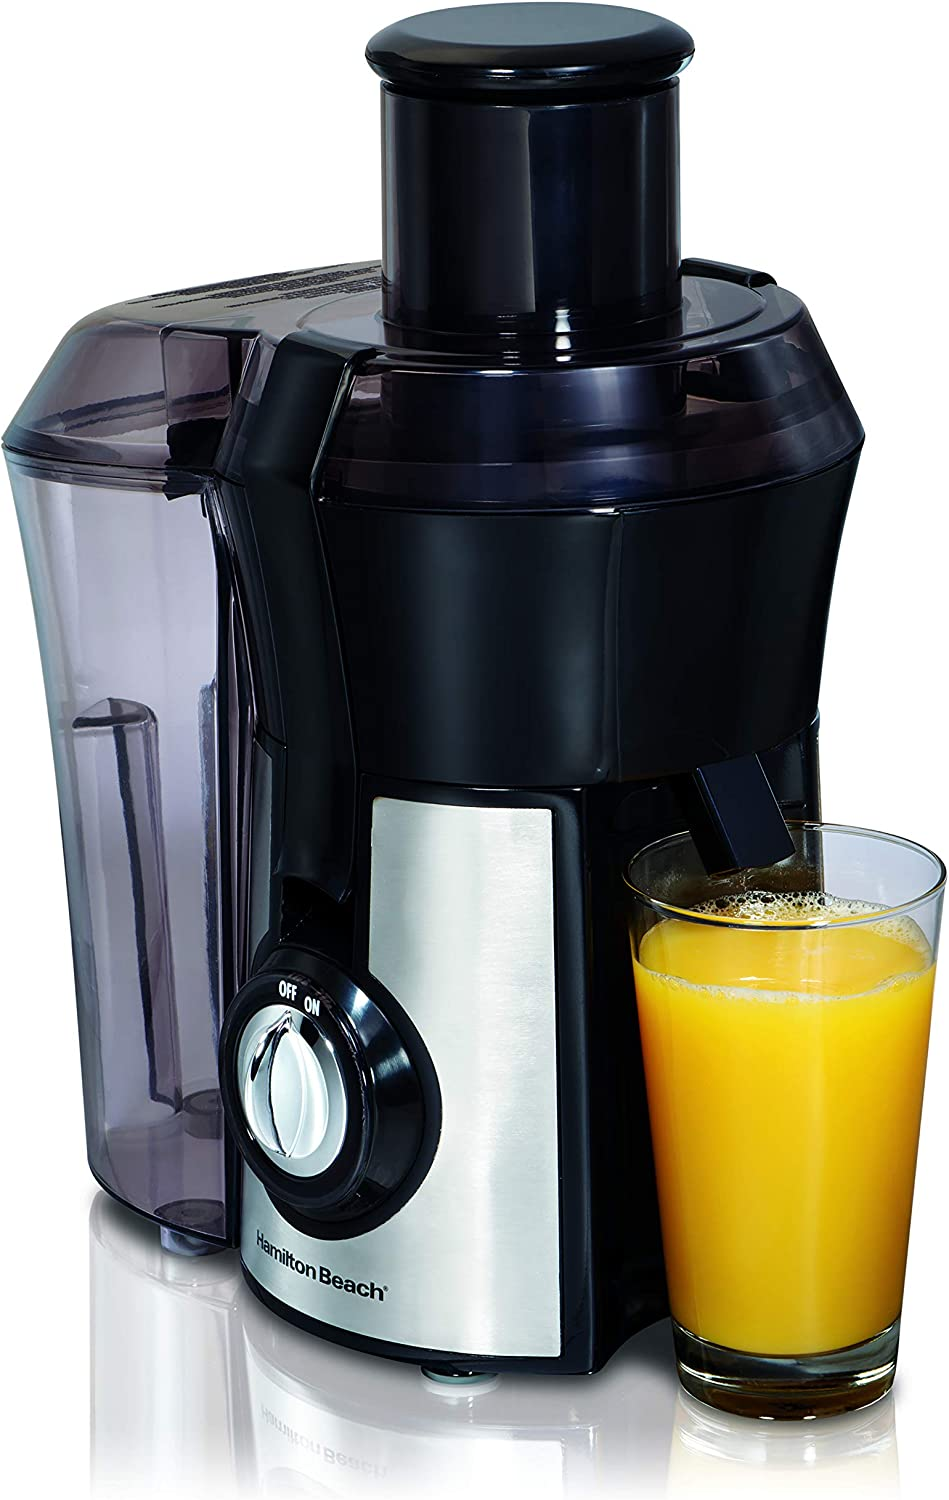 "Hamilton Beach Pro Juicer Machine, Big Mouth Large 3"" Feedchute"